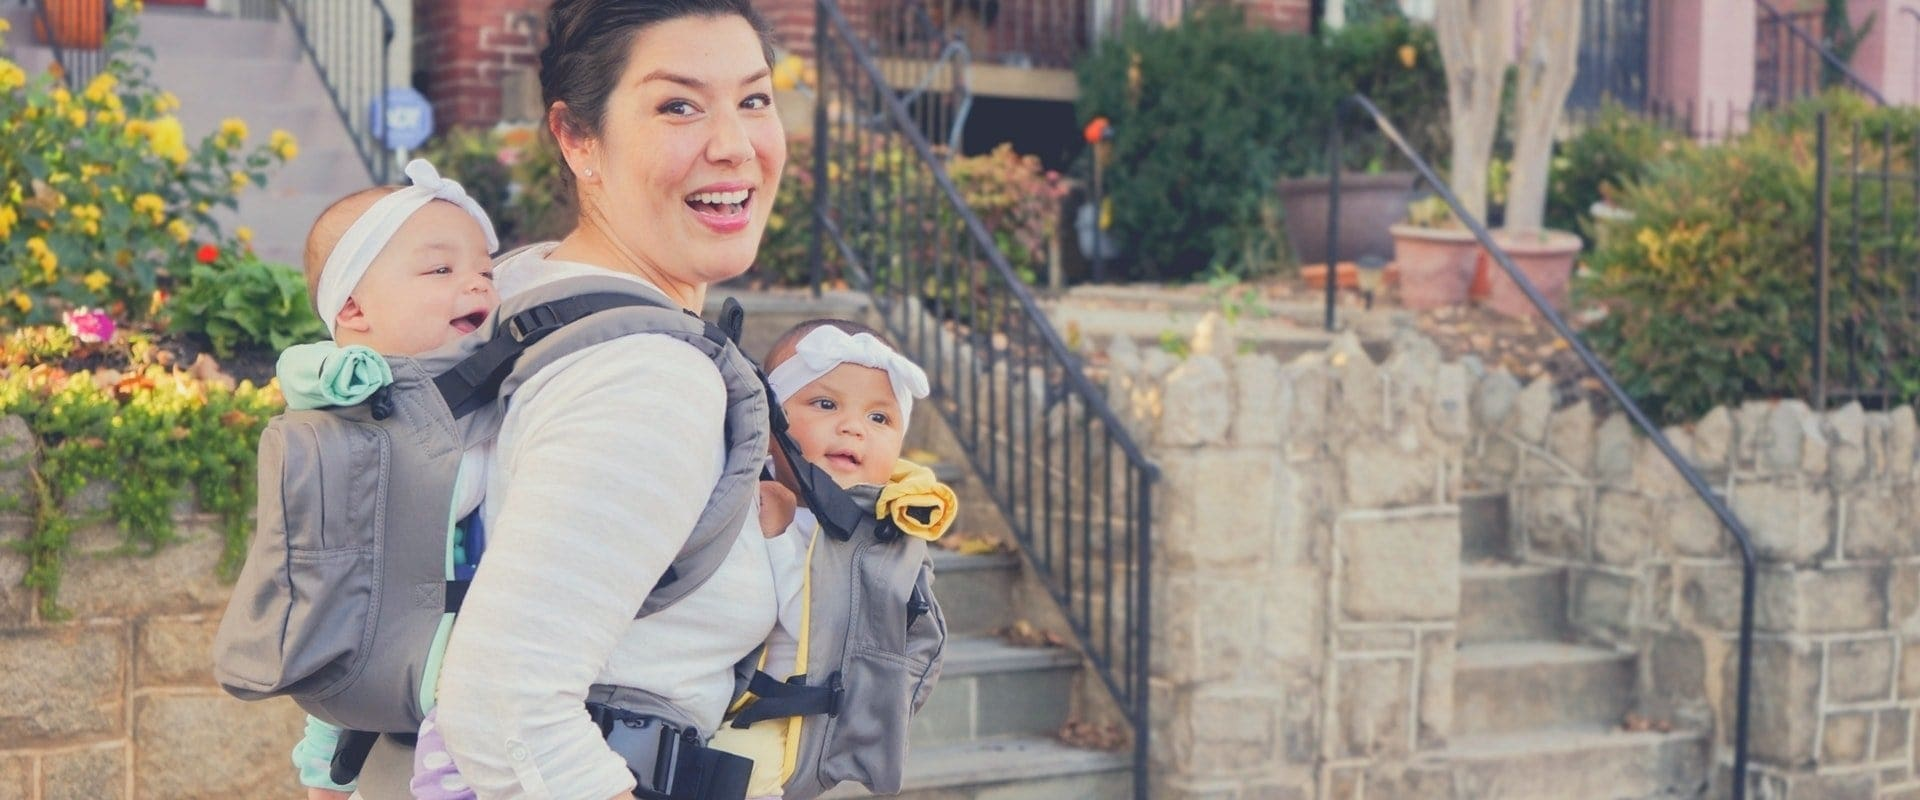 Twingo Carrier - Twin Baby Carrier - Twins & More Header image